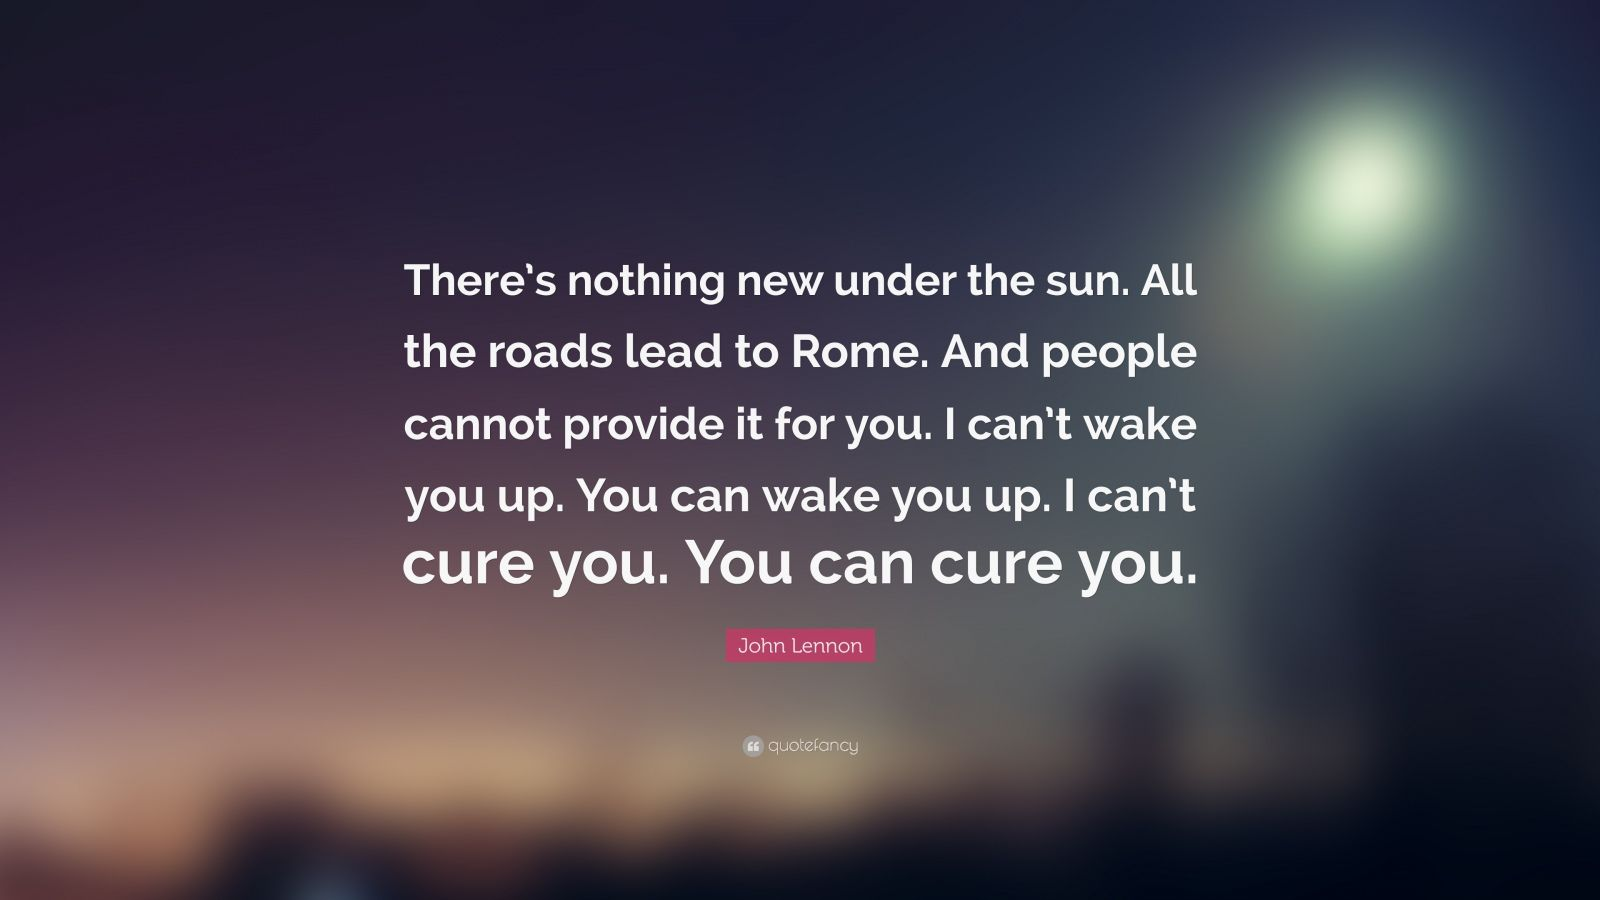 """John Lennon Quote: """"There's nothing new under the sun. All the roads lead to Rome. And people cannot provide it for you. I can't wake you up. You can wake you up. I can't cure you. You can cure you."""""""